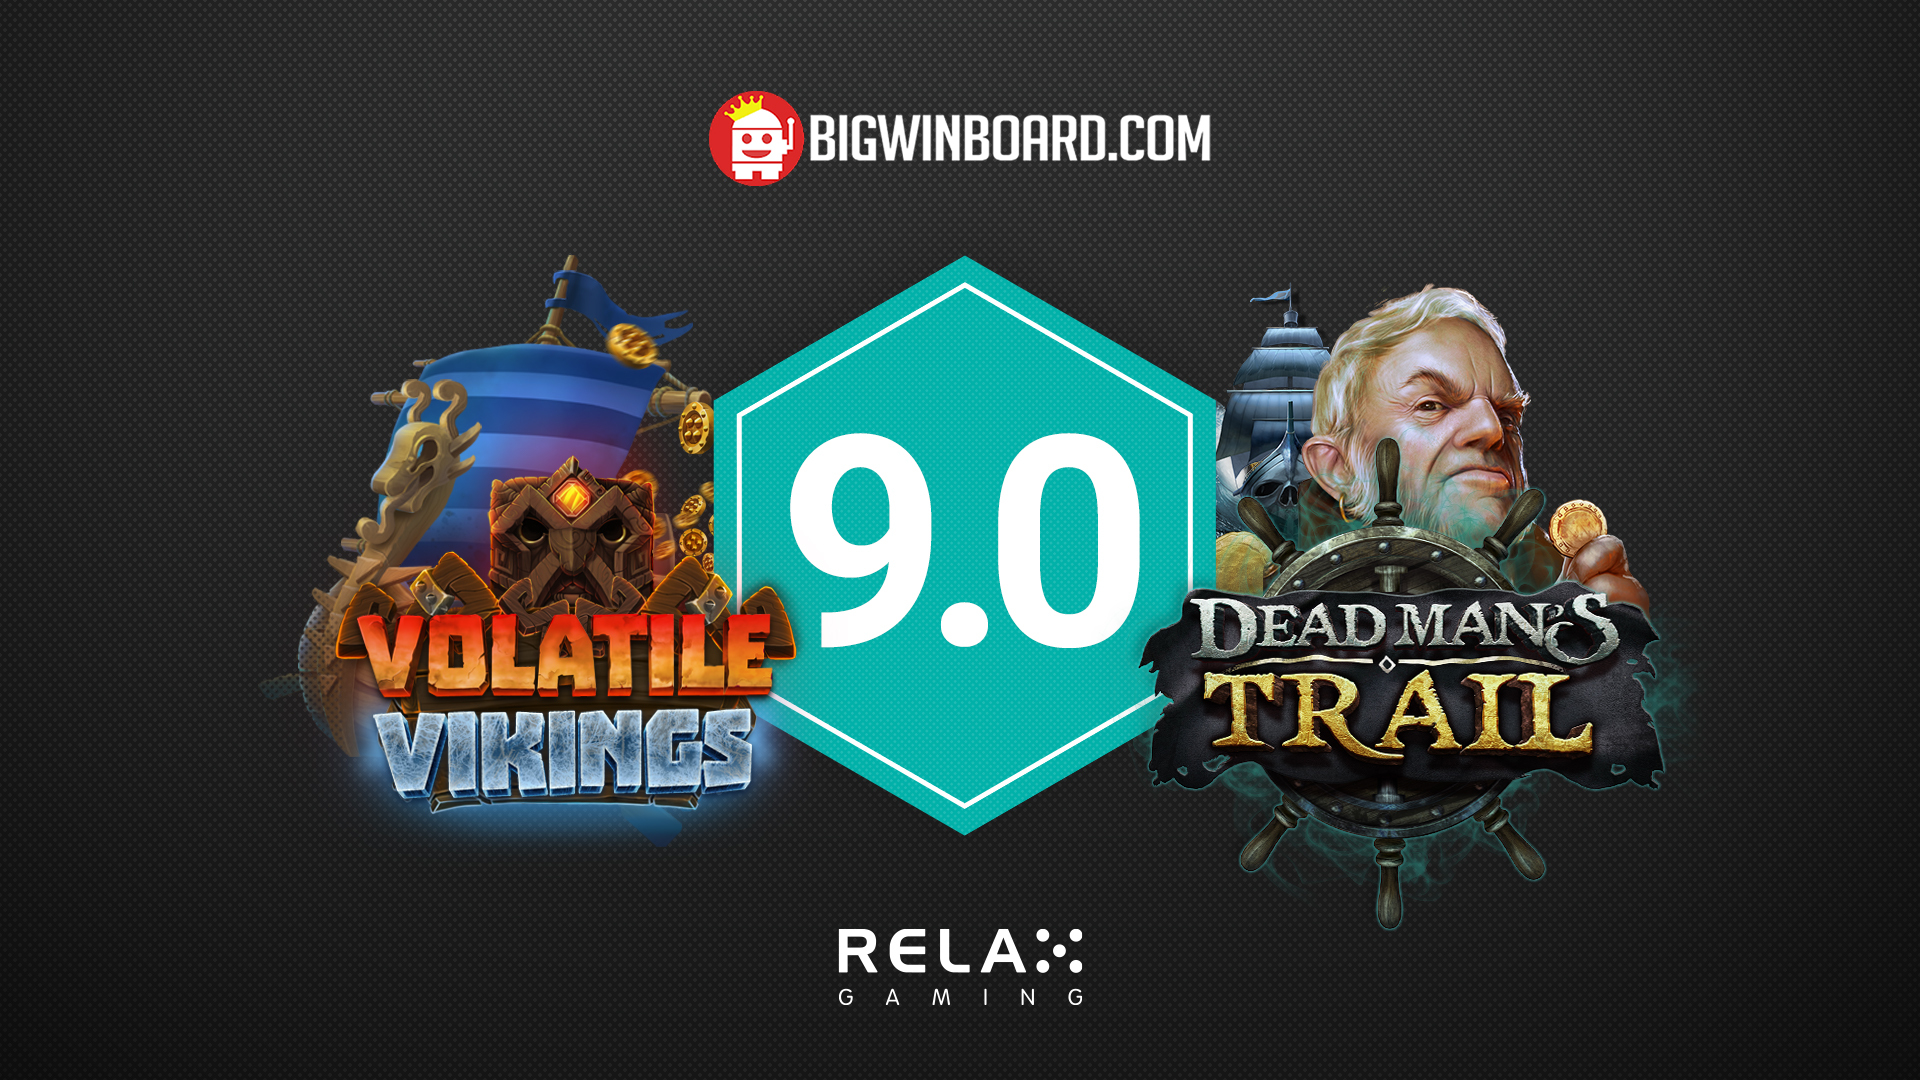 Relax Gaming grabs the headlines with stunning new slots